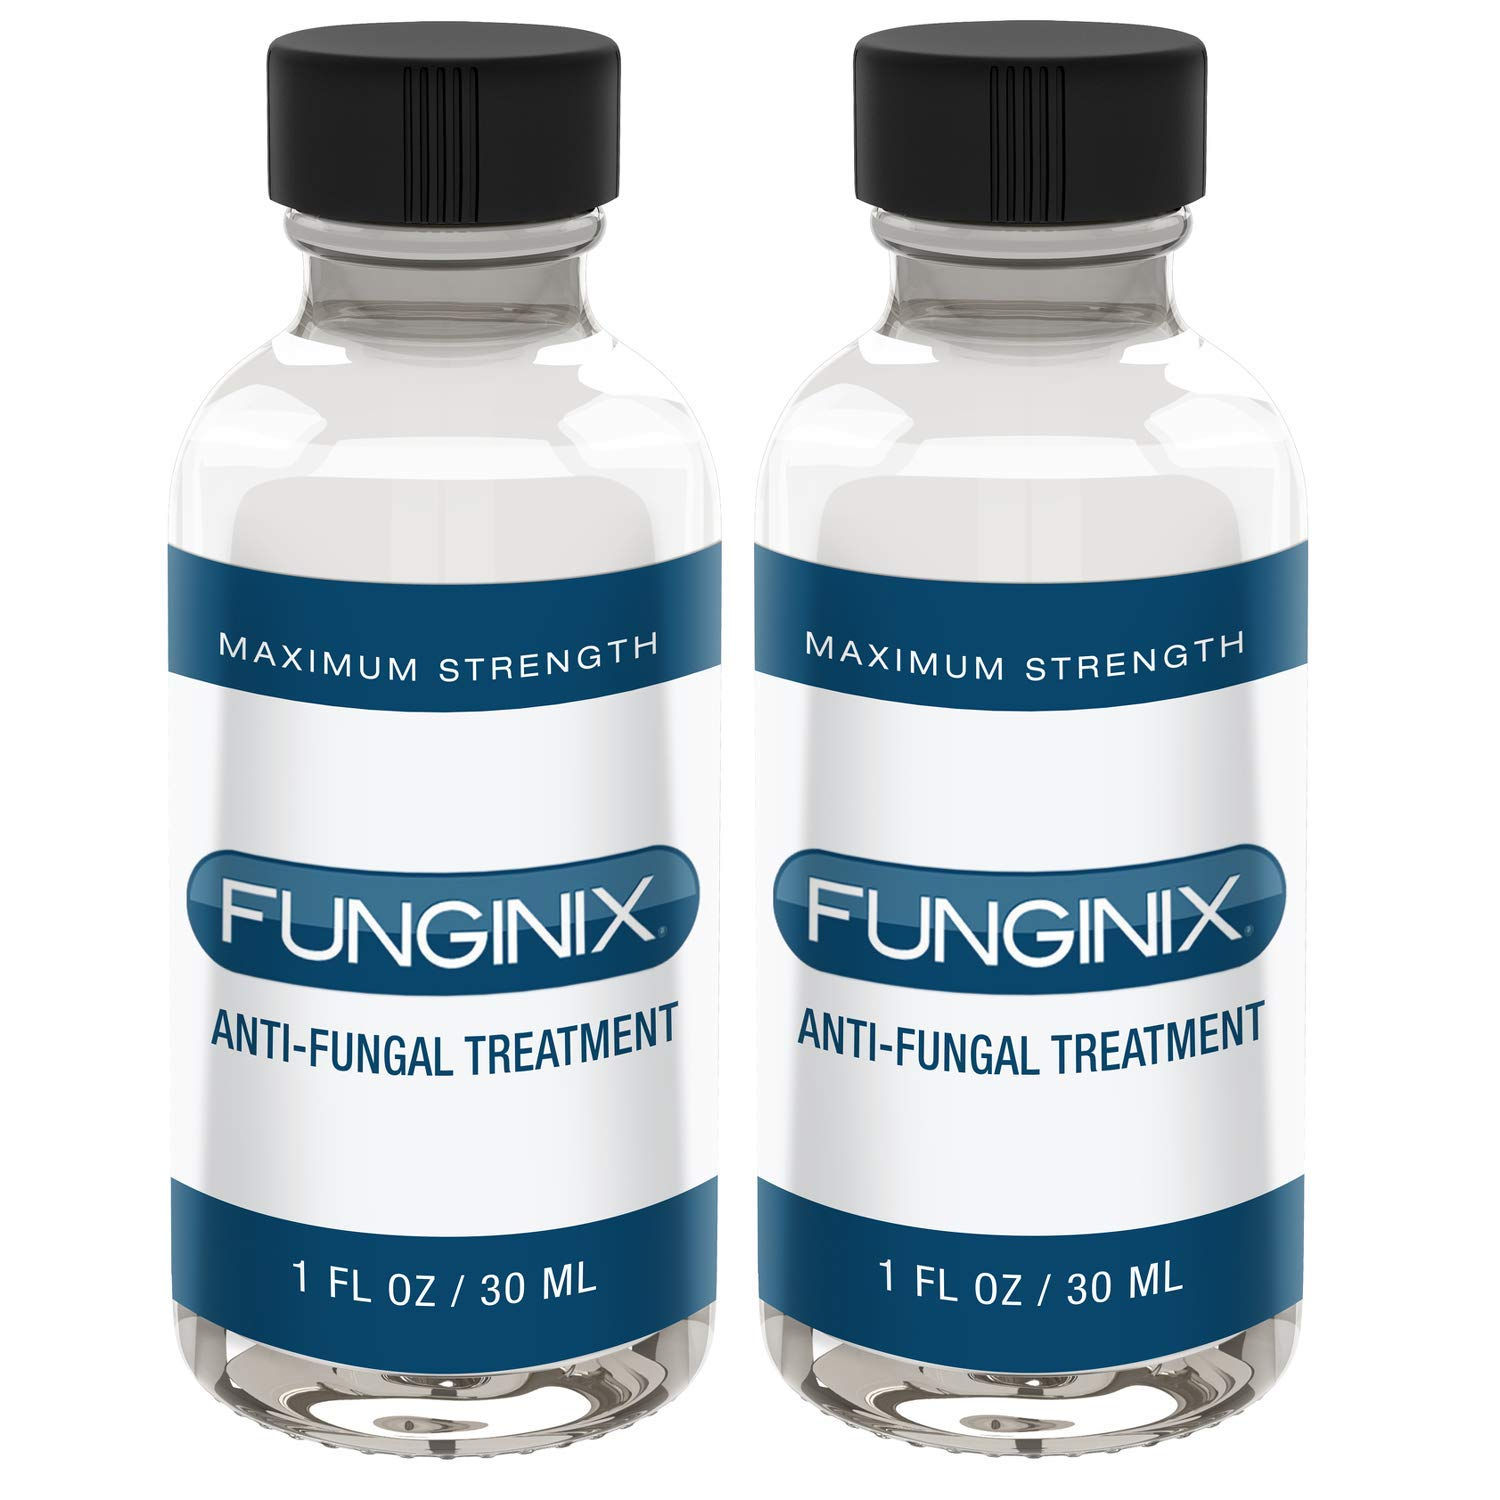 FUNGINIX Finger and Toe Fungus Treatment - Maximum Strength Anti-Fungal Solution, Eliminate Fungal Infections, Powerful & Effective (2 Bottles) by FUNGINIX